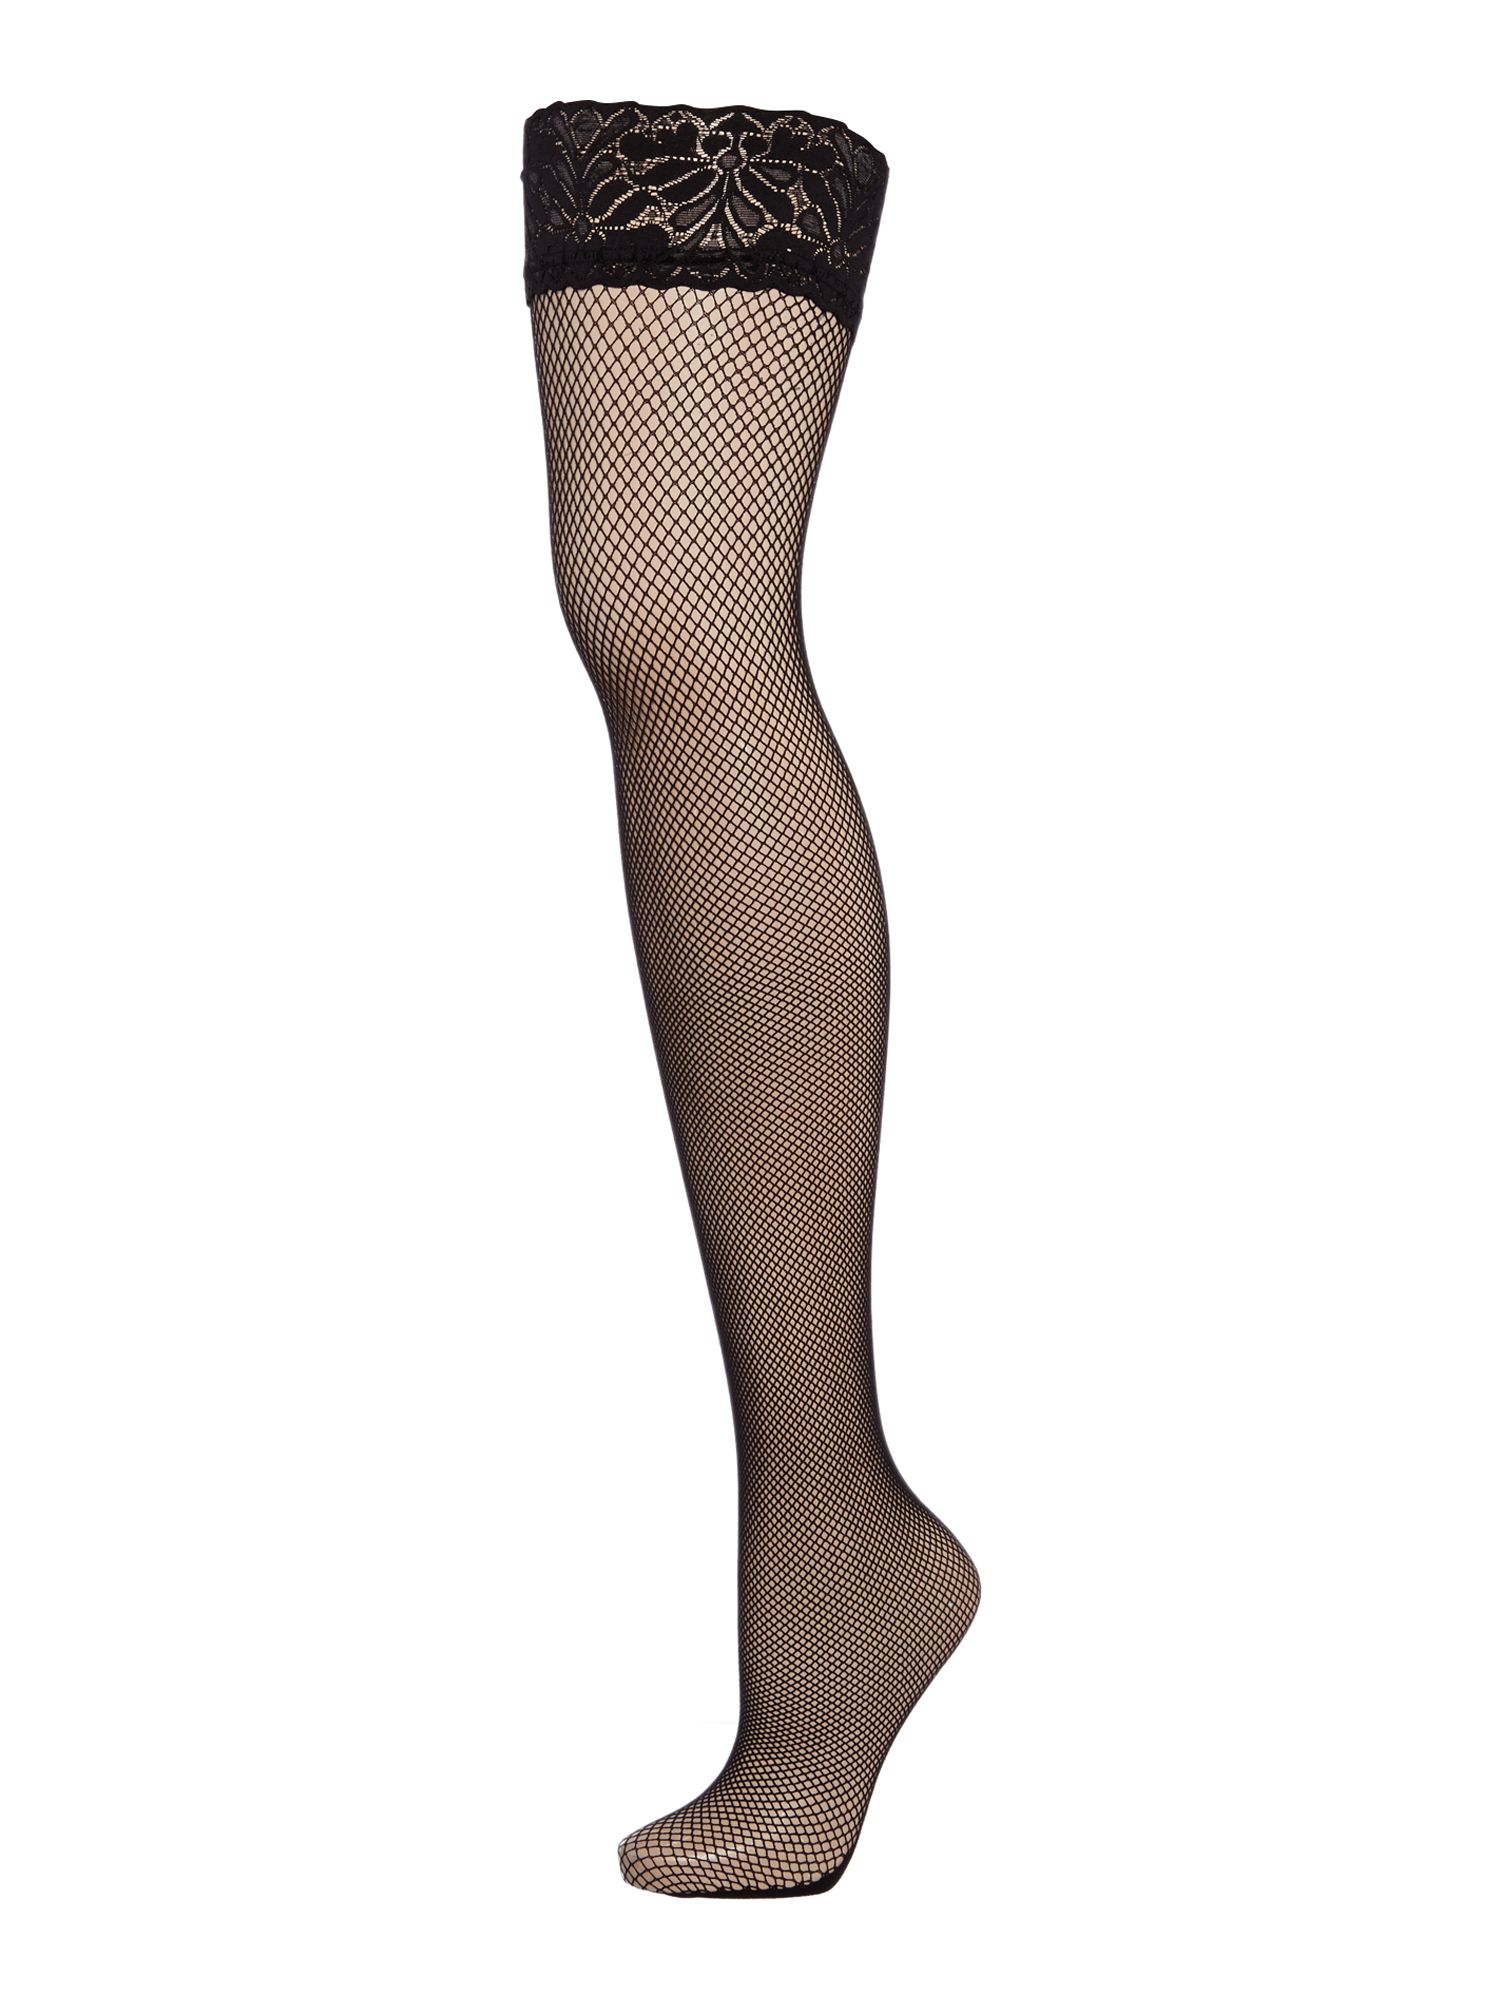 Jonathan aston vintage legs fishnet backseam hold ups review for Quality classic house of fraser